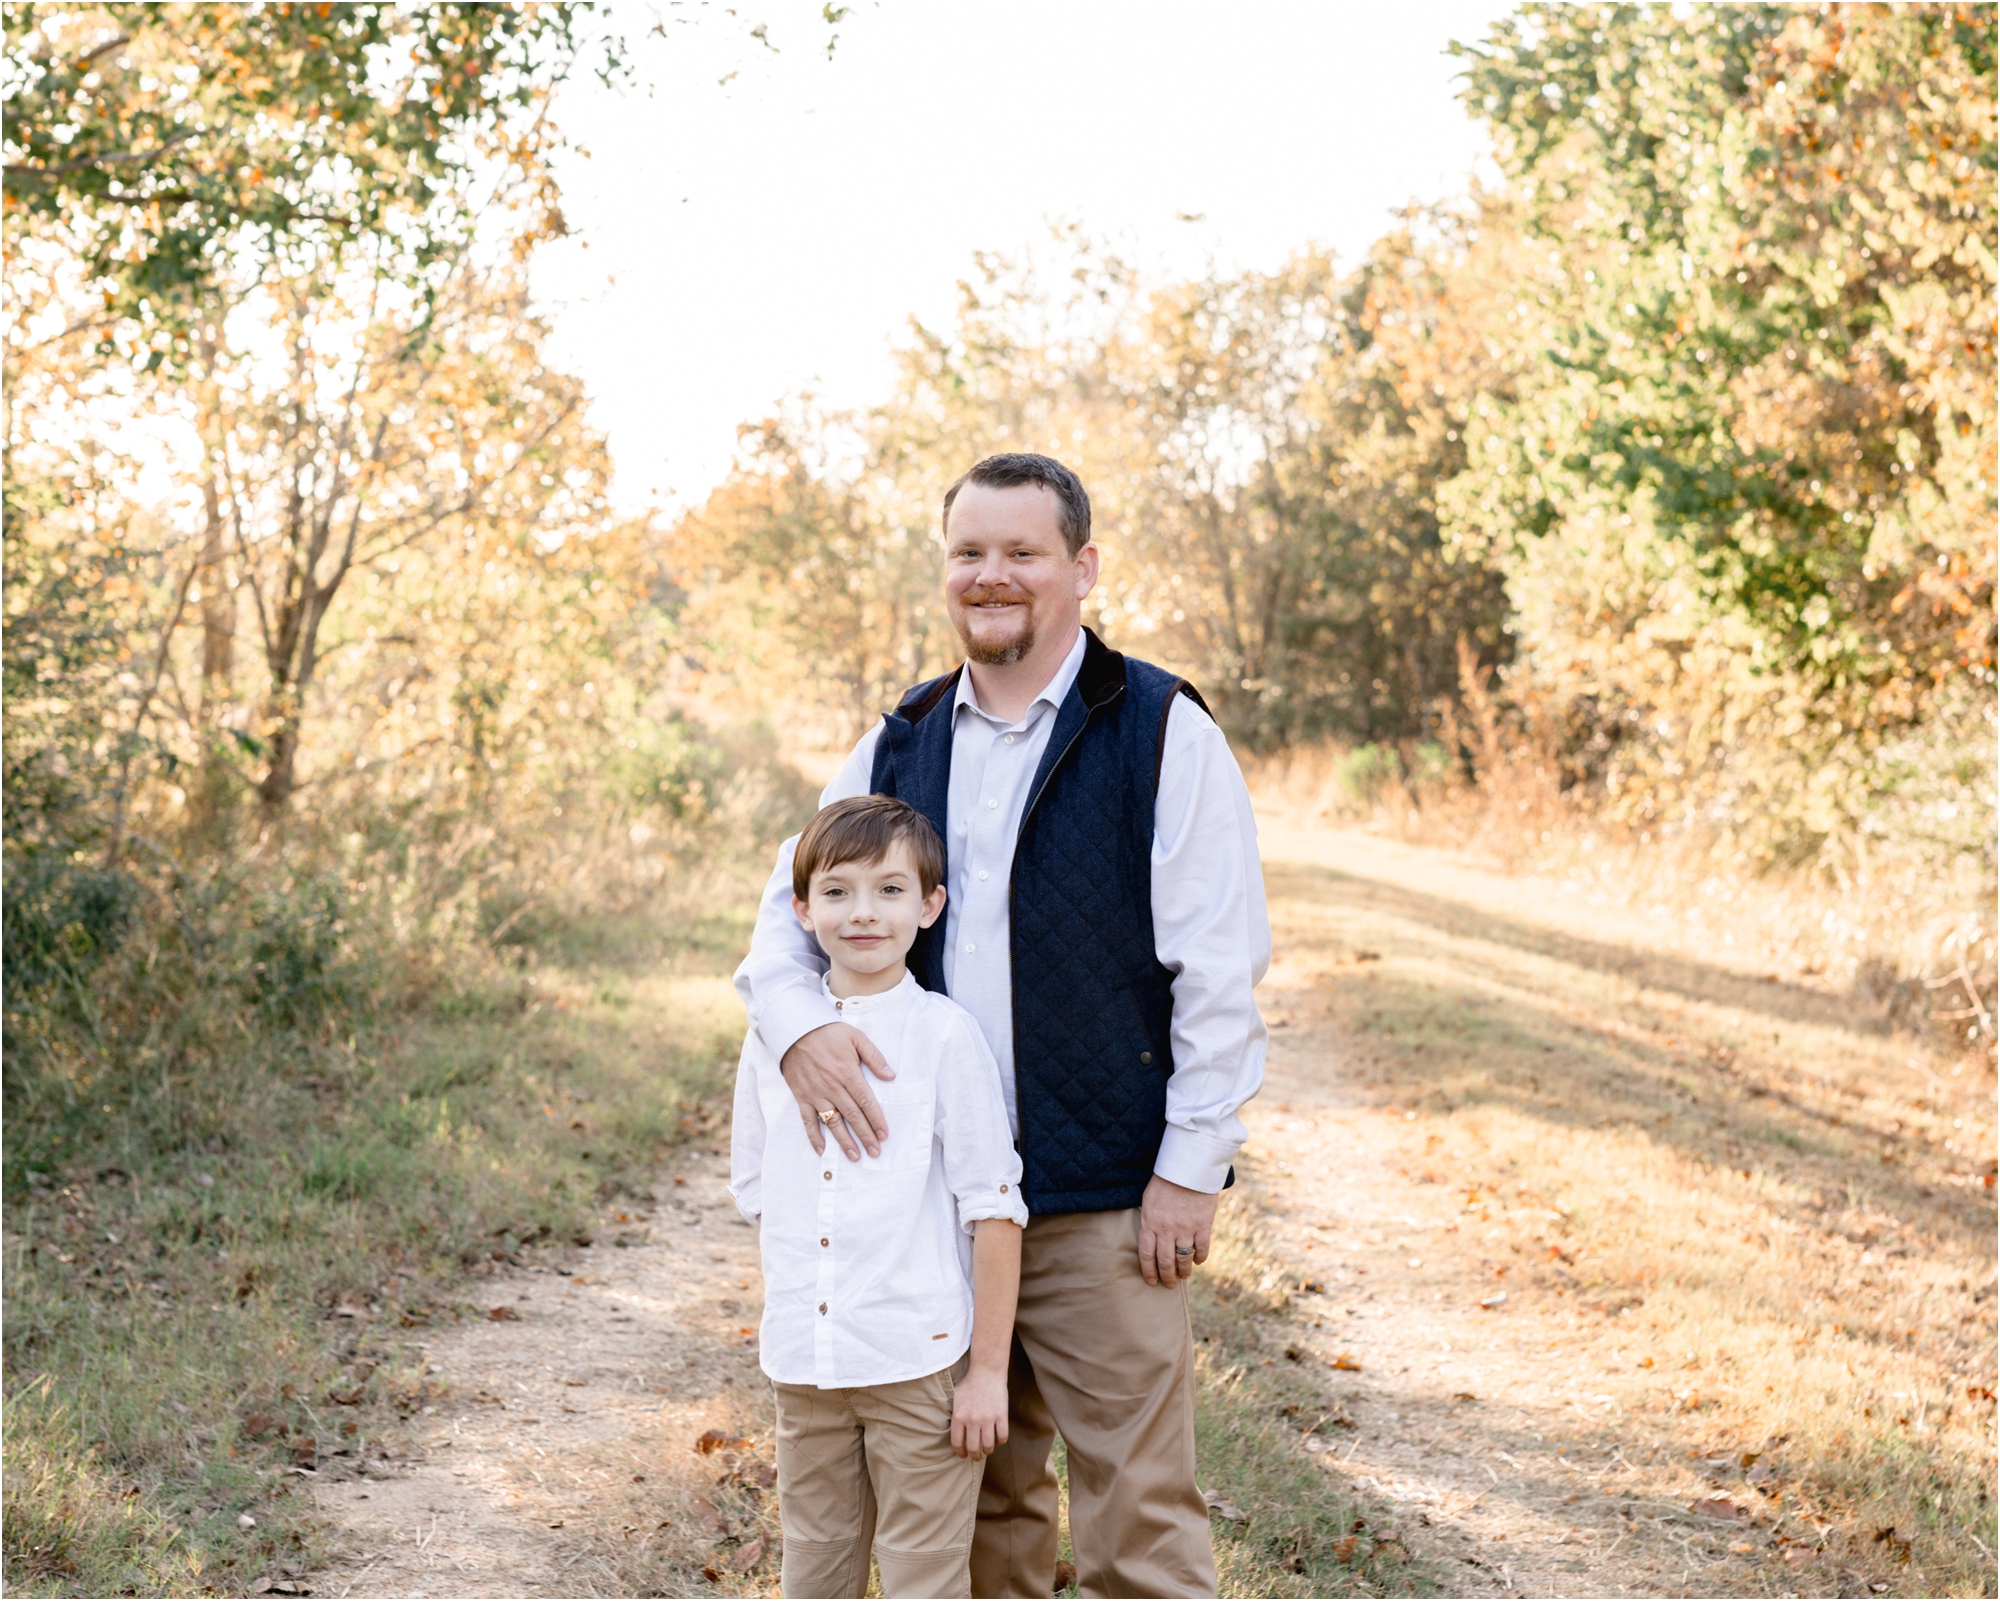 Dad hugging son in park during sunset family session with Katy TX family photographer, Lifetime of Clicks Photography.